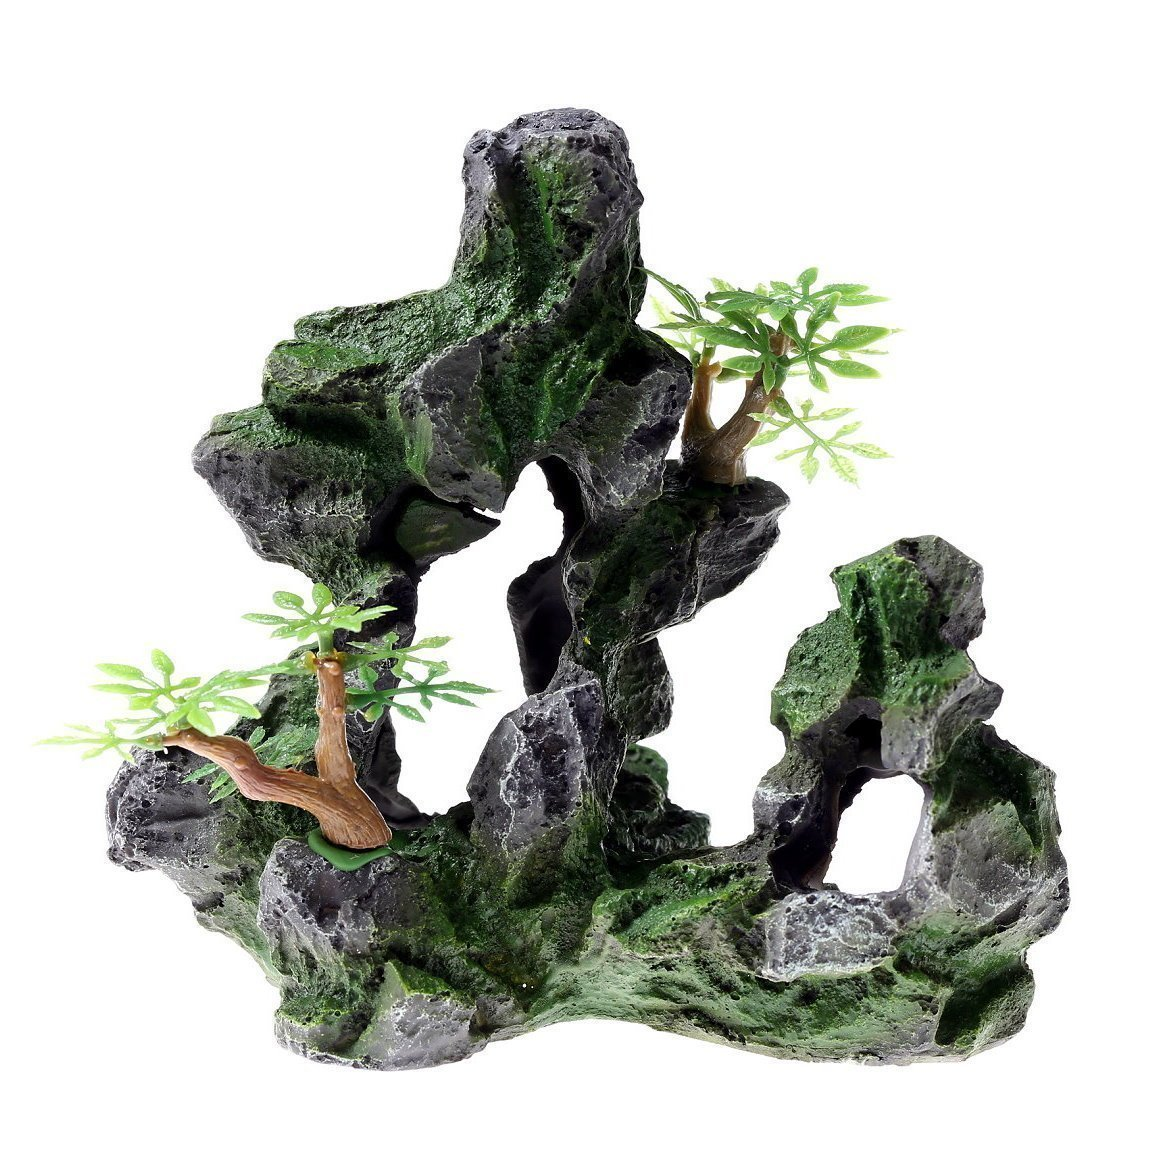 Rock cave 17 x 10 x 16 cm acquario decorazione ornamento Fish Tank pietra mountain View in resina